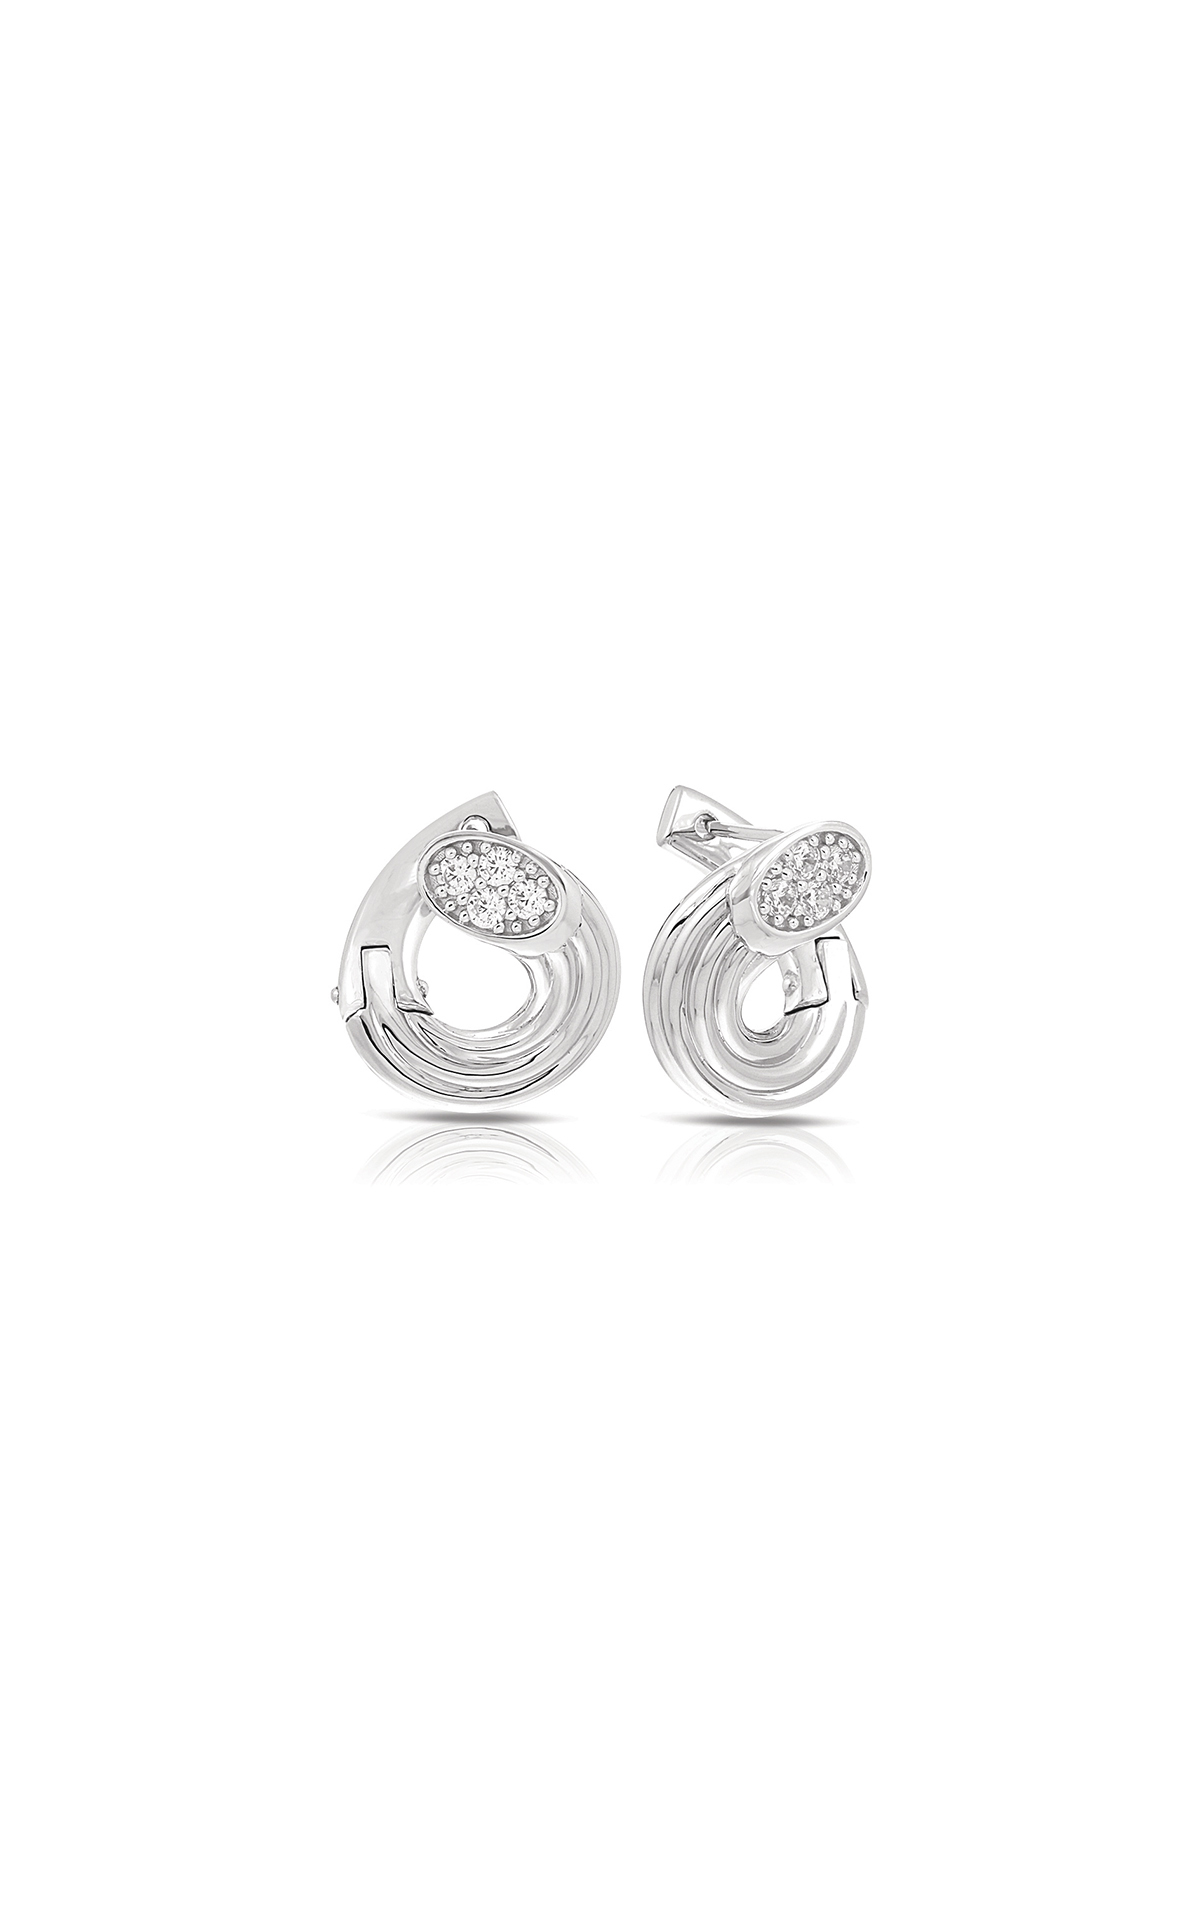 Belle Etoile Color Stone Cavo White Earrings 3011620801 product image